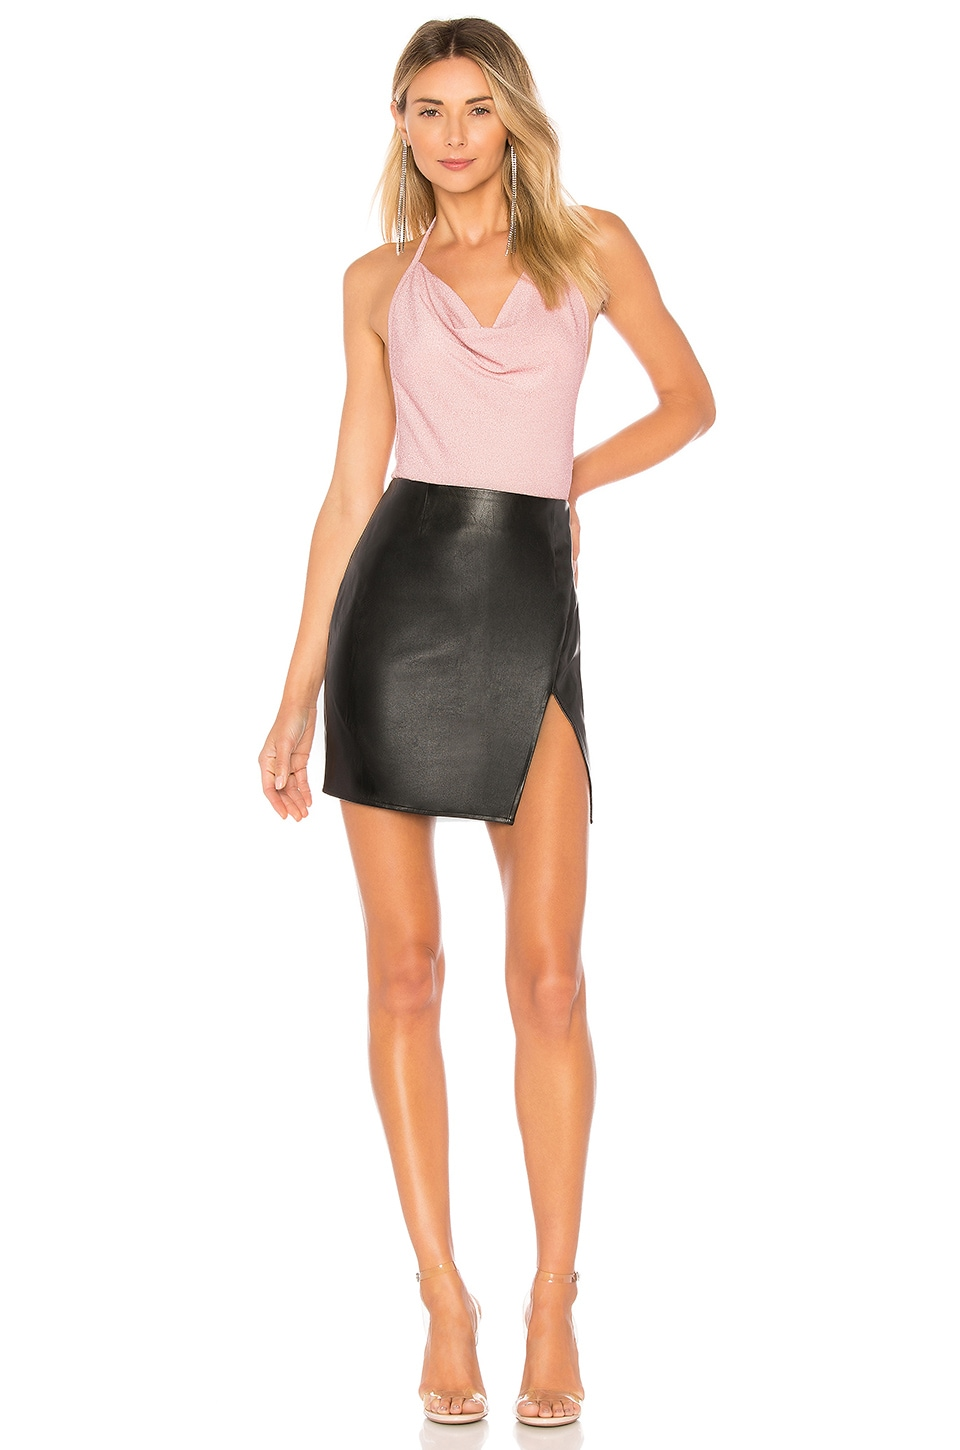 Trinity Faux Leather Skirt, view 4, click to view large image.